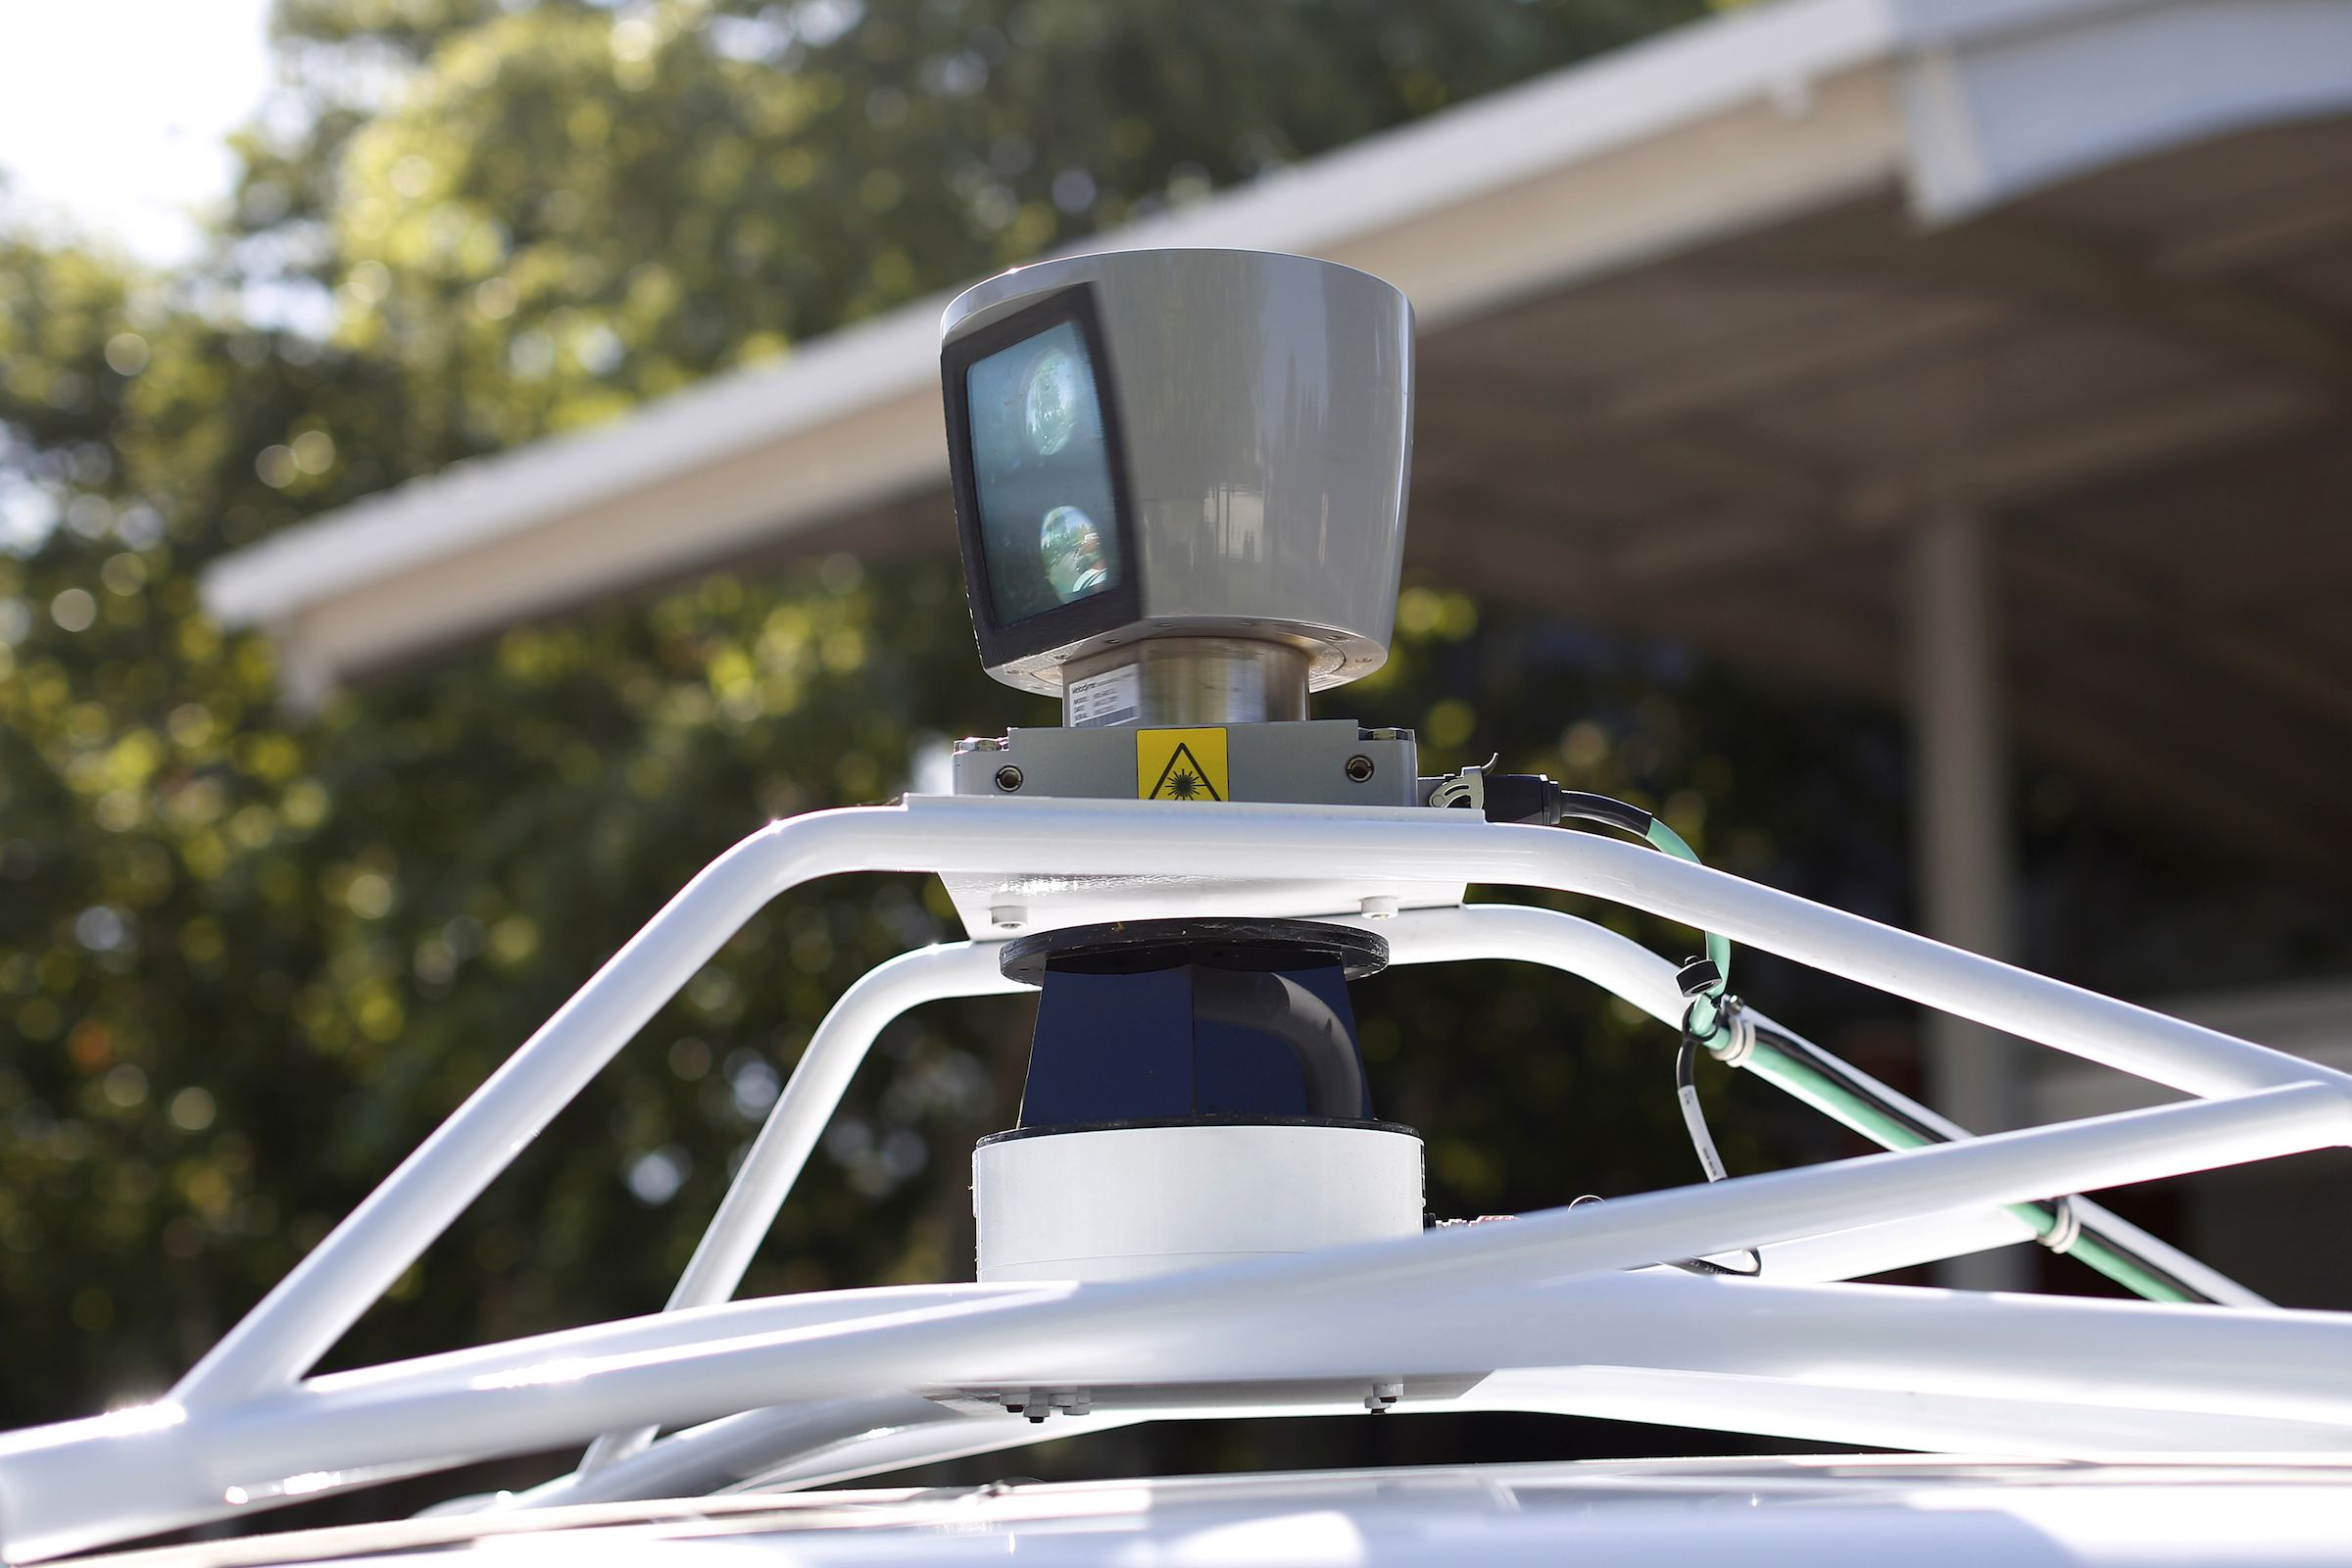 A sensor is seen spinning atop a Google self-driving vehicle before a presentation at the Computer History Museum in Mountain View, California May 13, 2014. REUTERS/Stephen Lam (UNITED STATES - Tags: SCIENCE TECHNOLOGY TRANSPORT) - RTR3OZBV